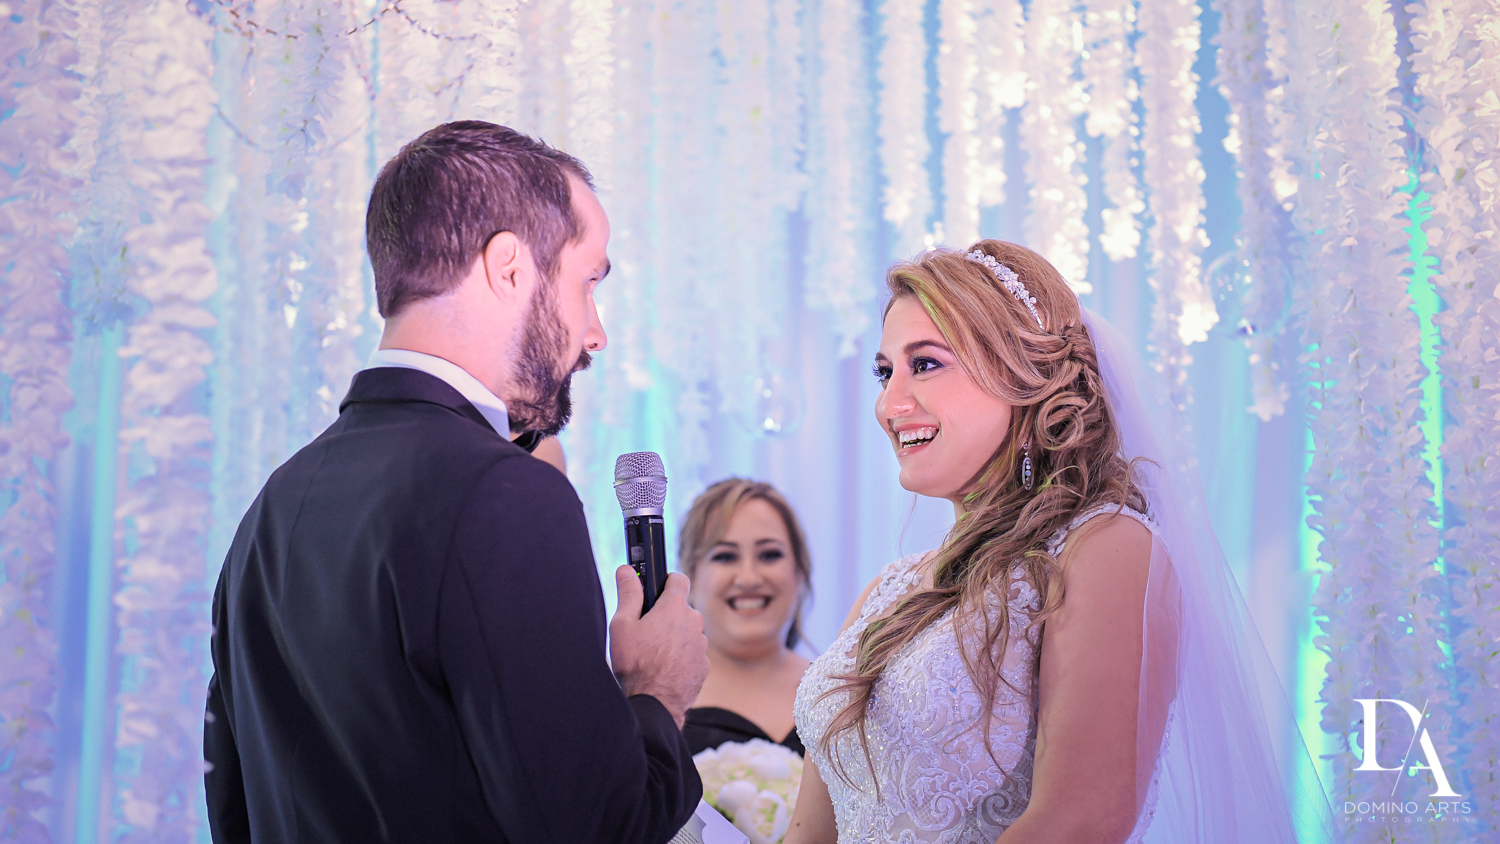 vows at Ultimate Events Wedding at Turnberry Isle Resort Miami by Domino Arts Photography